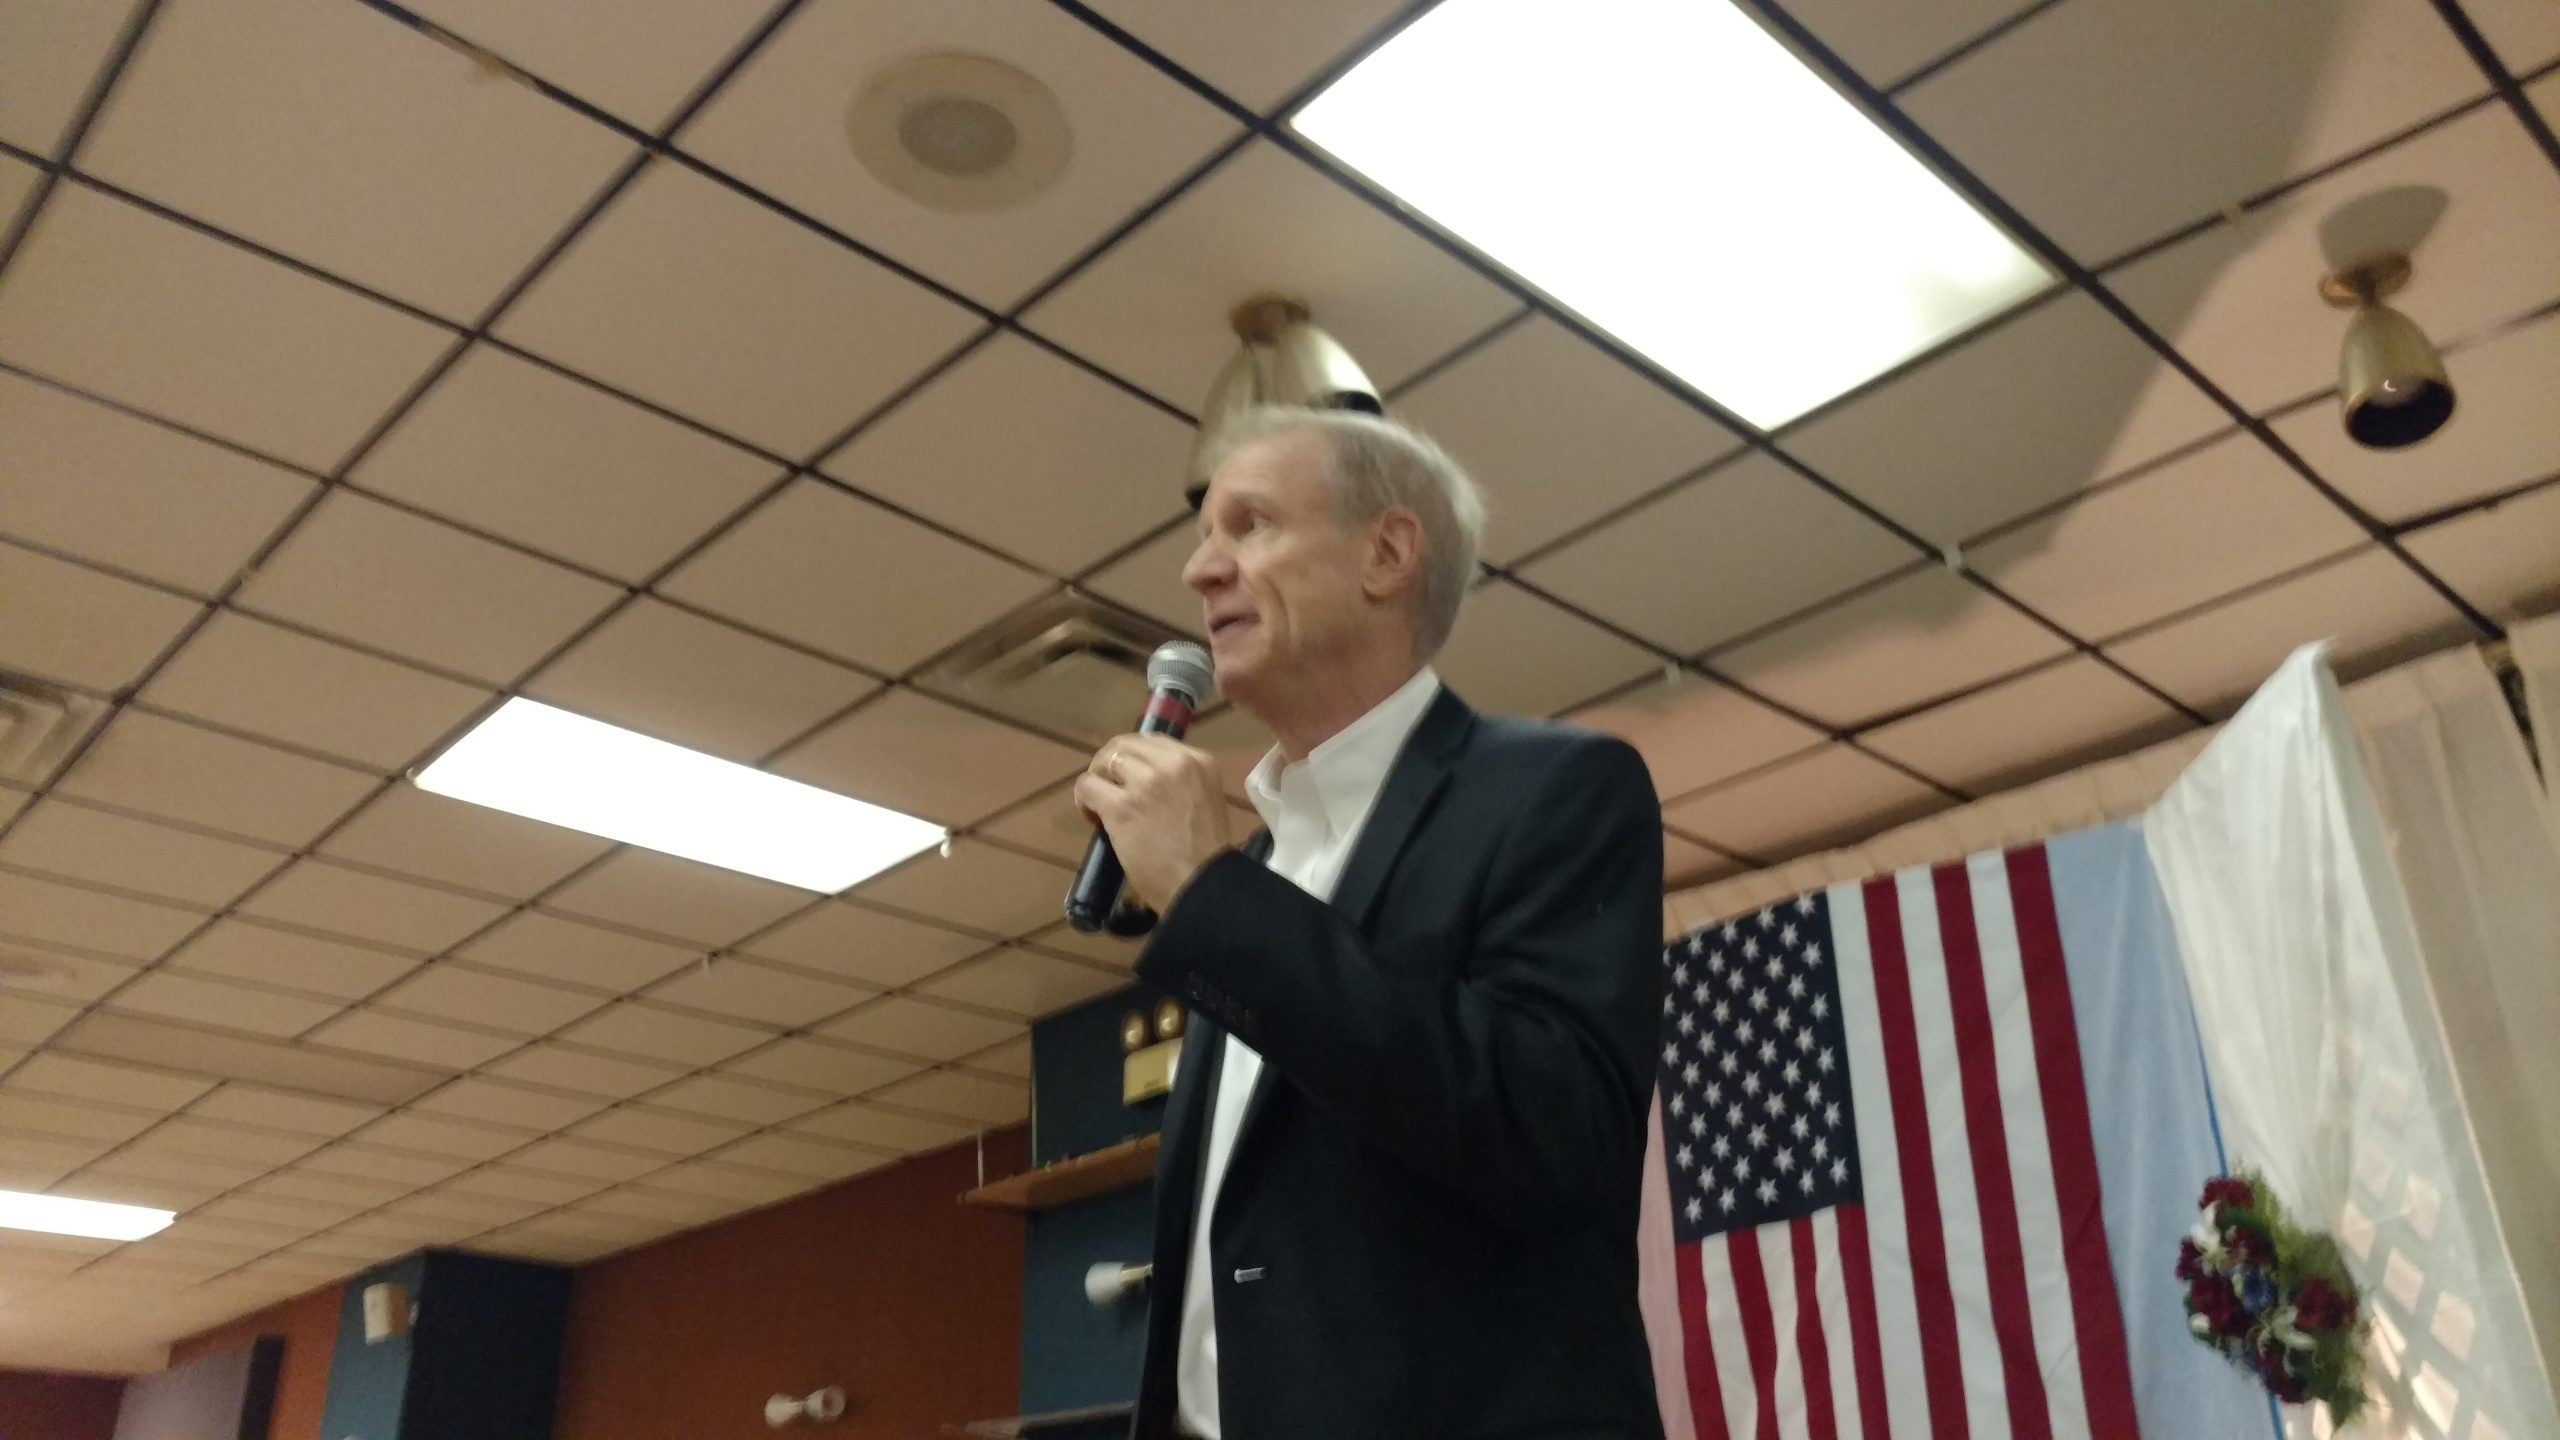 Gov Rauner blasts Madigan at Fayette Co LDD, says it's time to get him out as Speaker